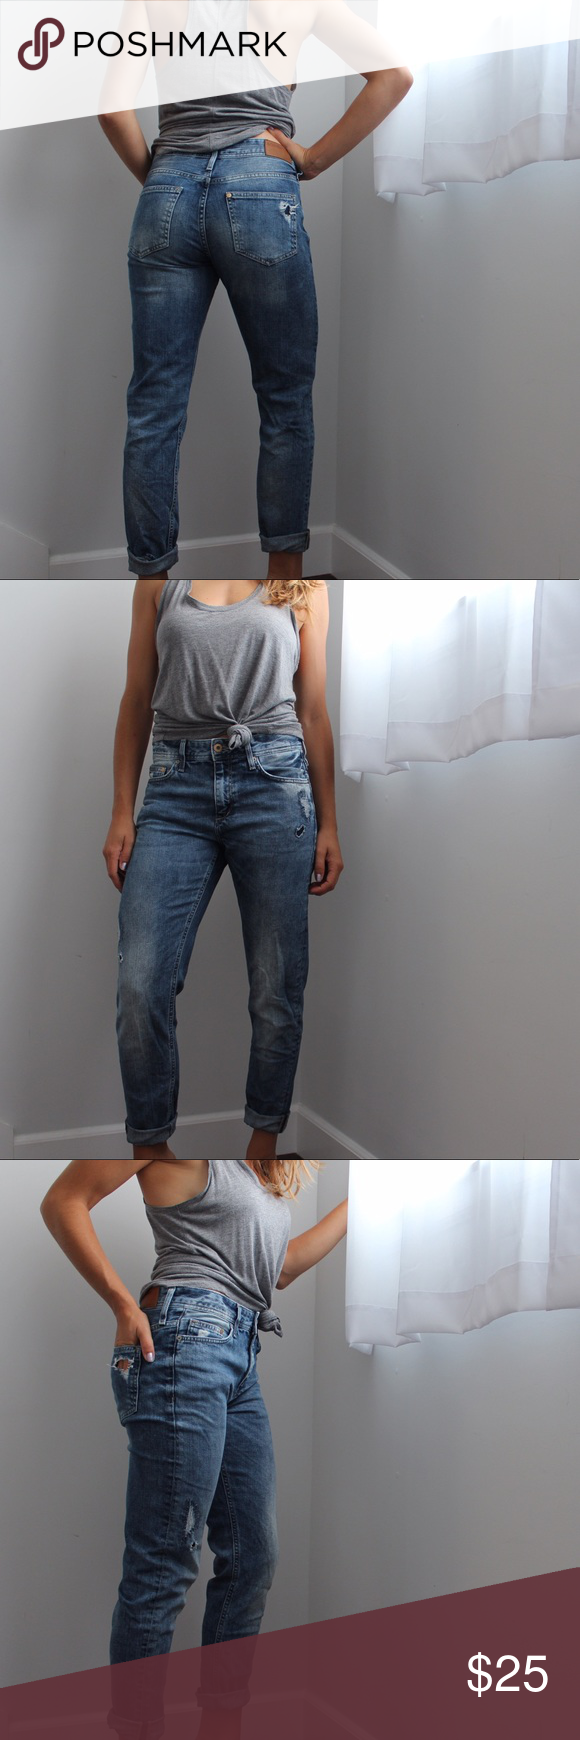 H&M Boyfriend Jeans w/ Tapered Leg & Distress The most comfortable ...